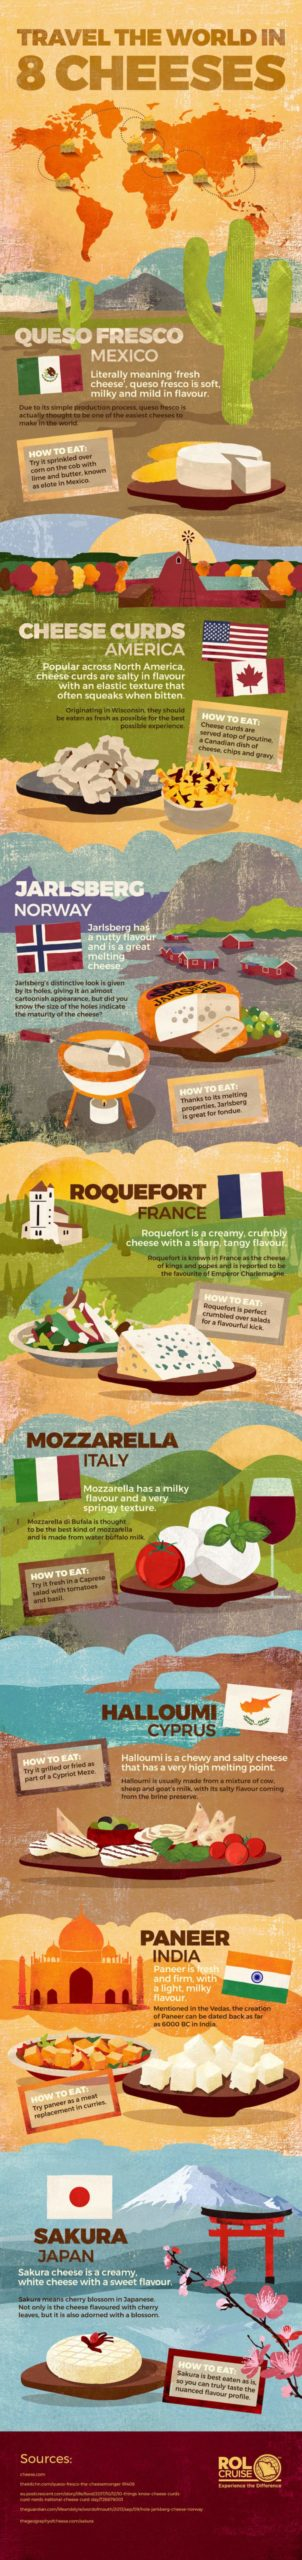 Travel-the-world-in-8-cheeses